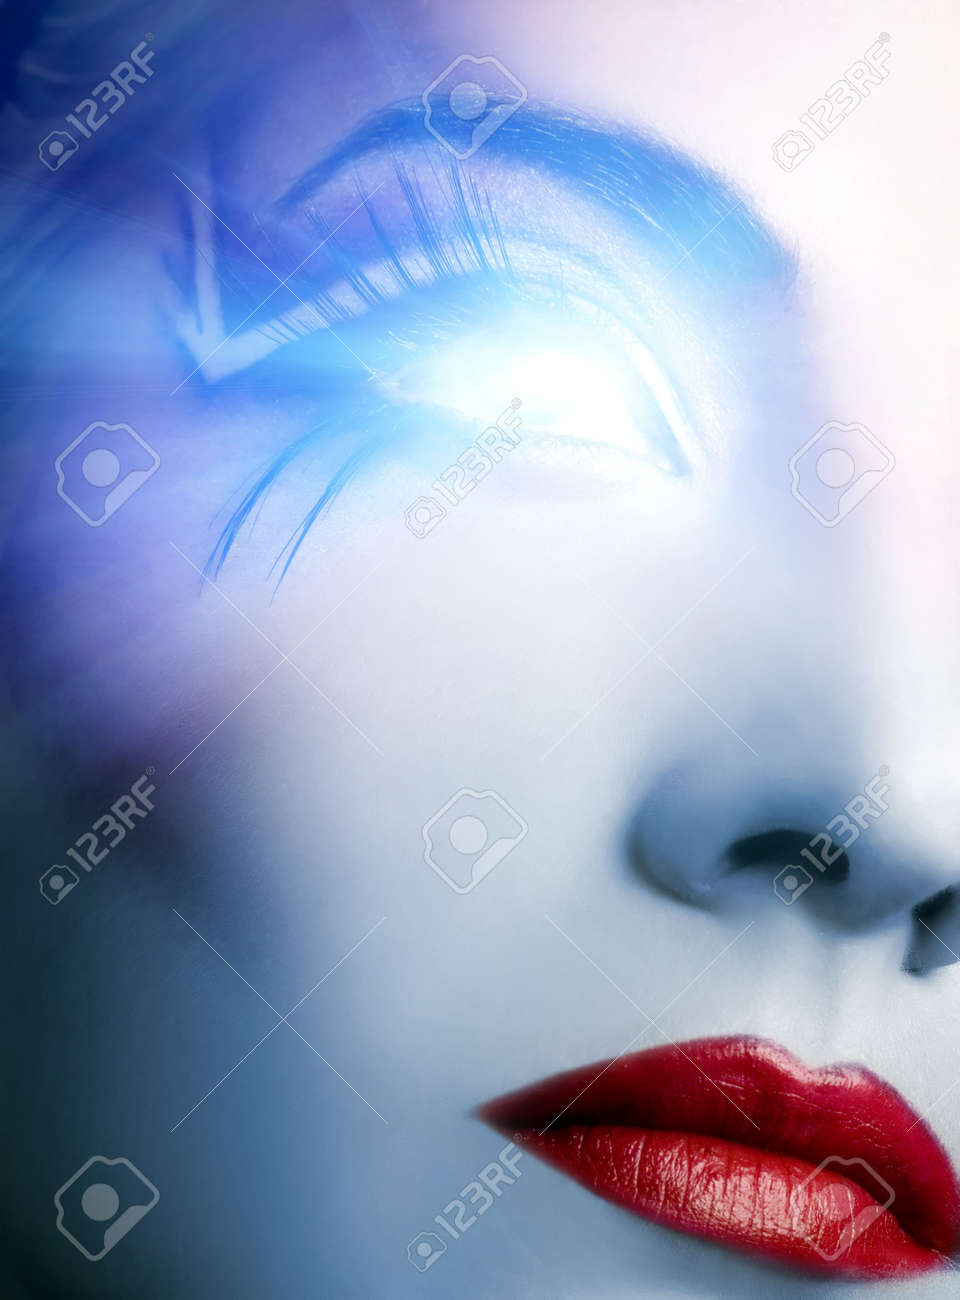 Futuristic cyber face with glowing eye Stock Photo - 3081805